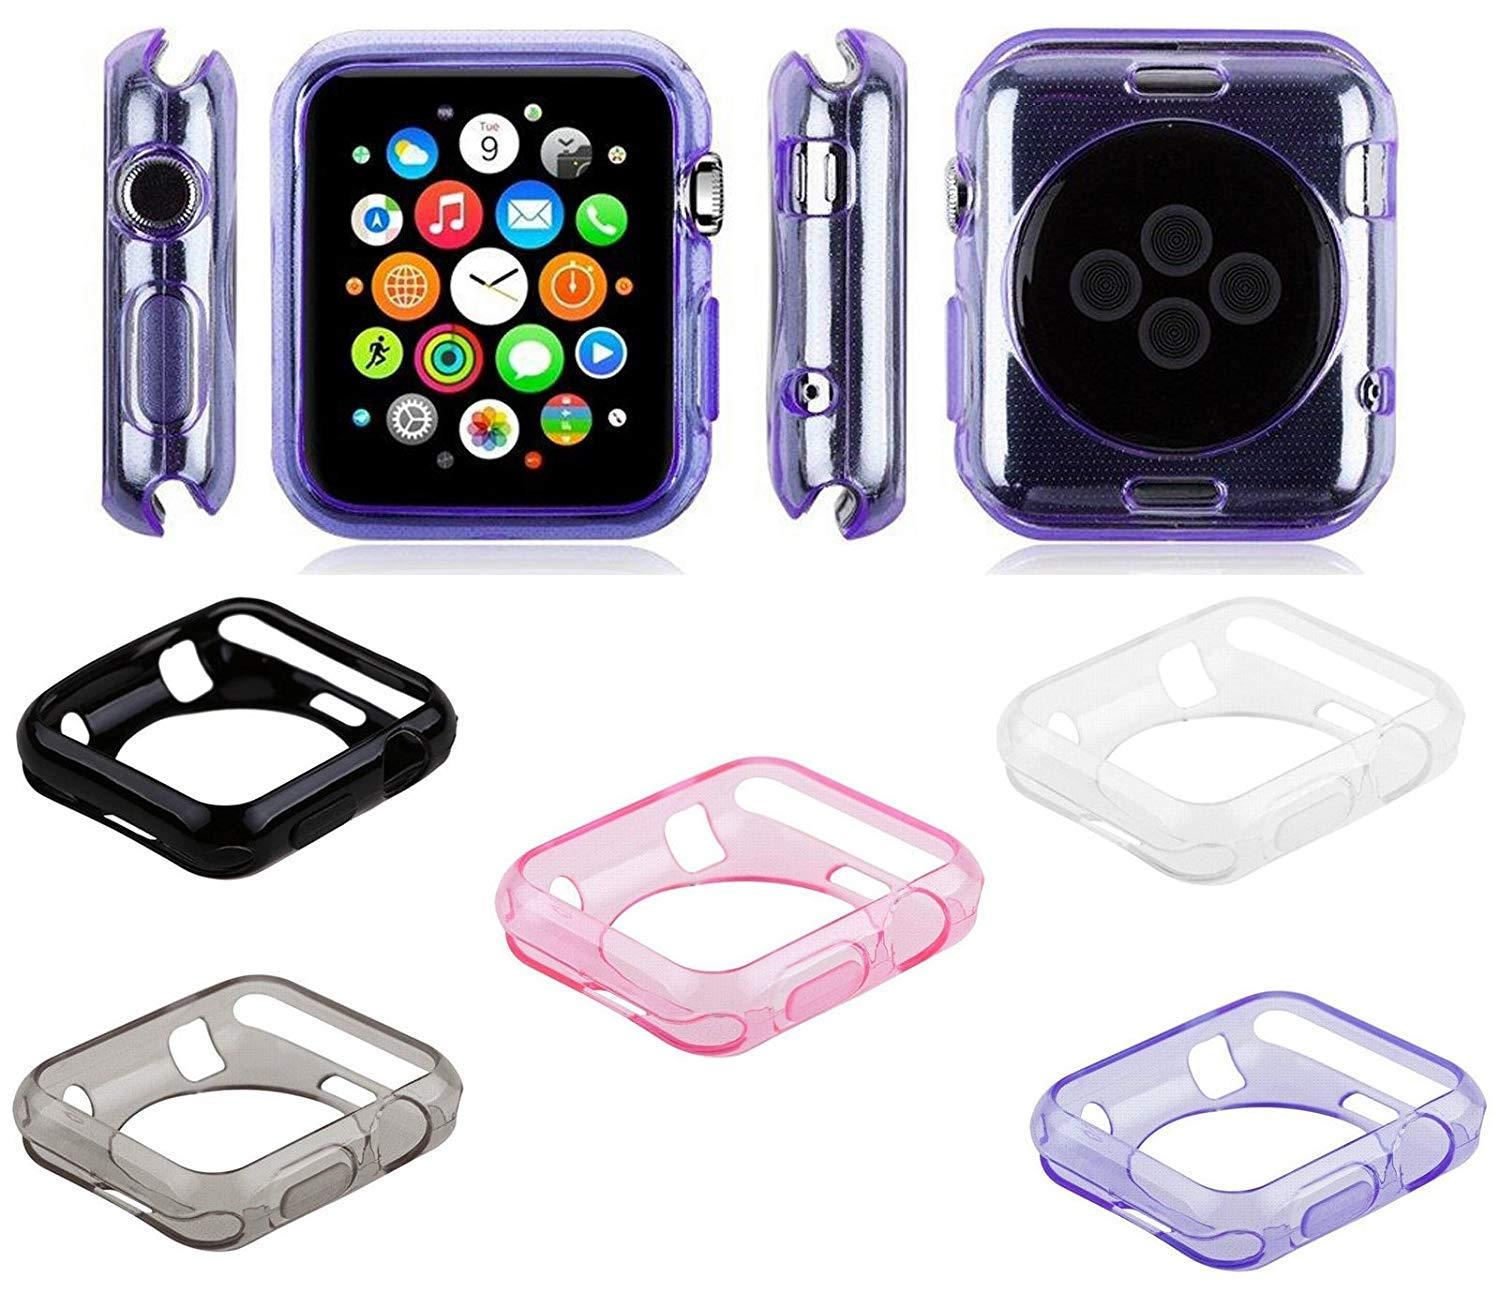 5 Pack by Tech Express for Apple iWatch Black + Pink, Clear, Gray, Purple Liquid Air Bumper [Watch Gel Cover] Skin Protective Case Shockproof Ultra Rugged Series 1, 2, 3 & 4 Accessories (40mm Clear) by Tech Express